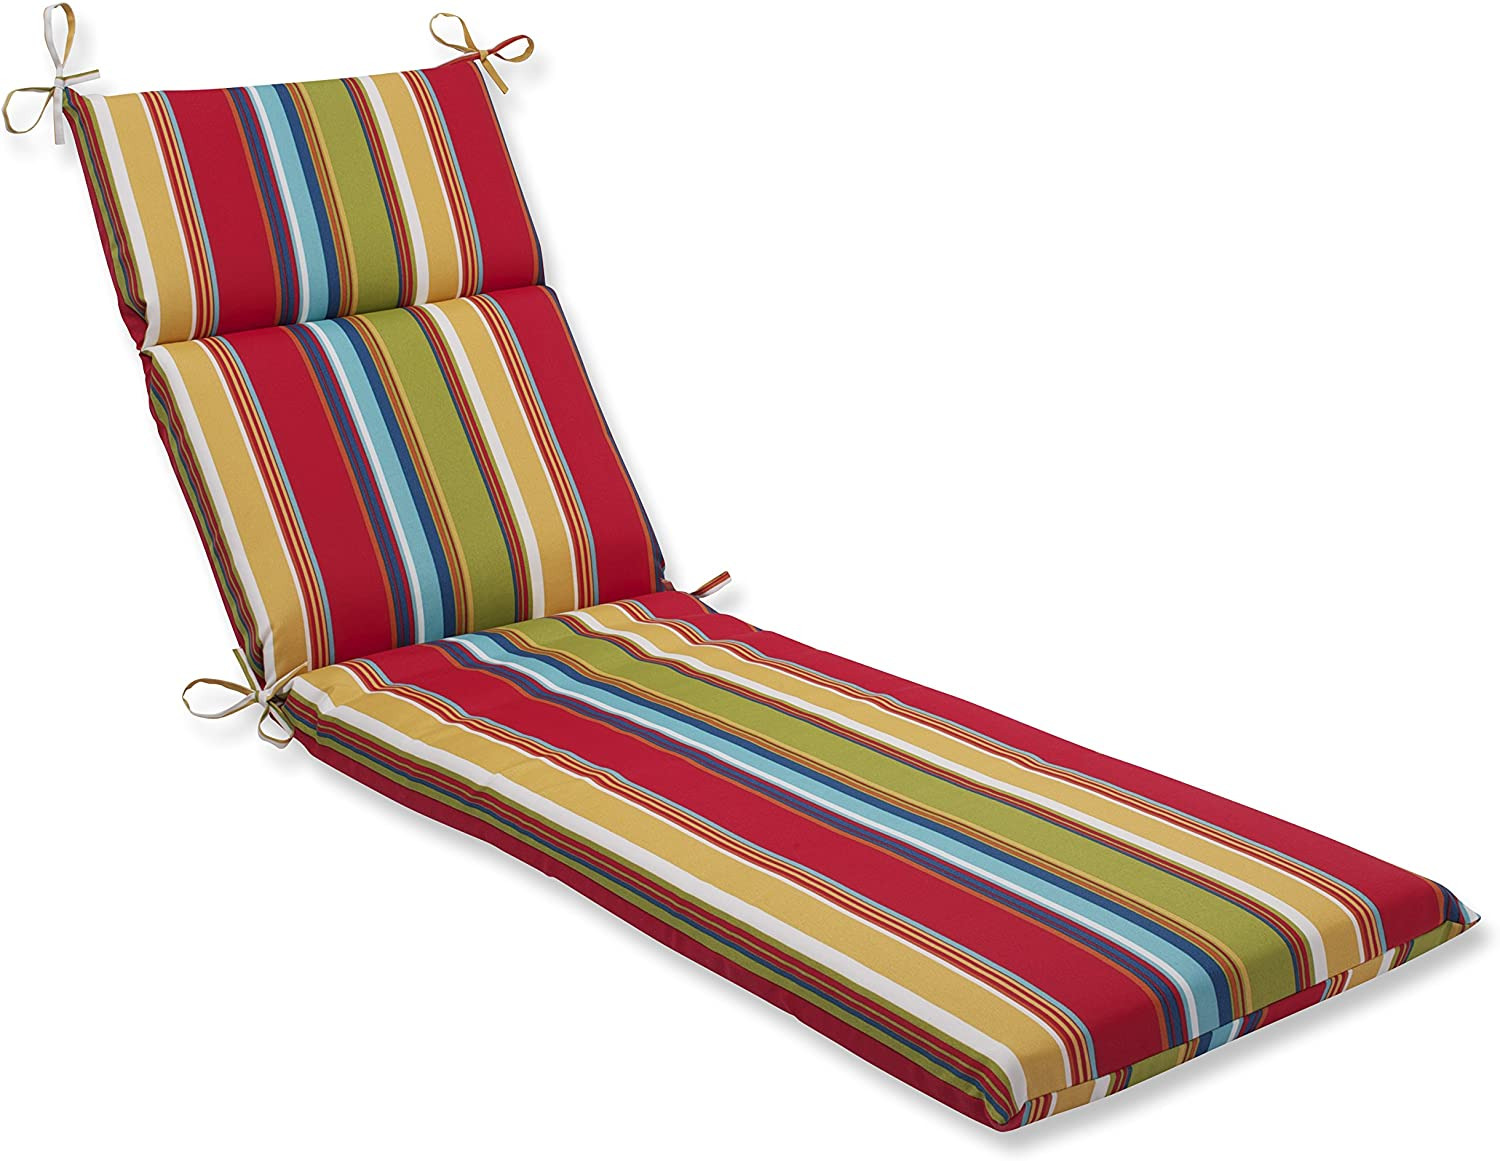 Pillow Perfect 563657 Outdoor/Indoor Westport Garden Chaise Lounge Cushion, 72.5 in. L X 21 in. W X 3 in. D, Multicolored